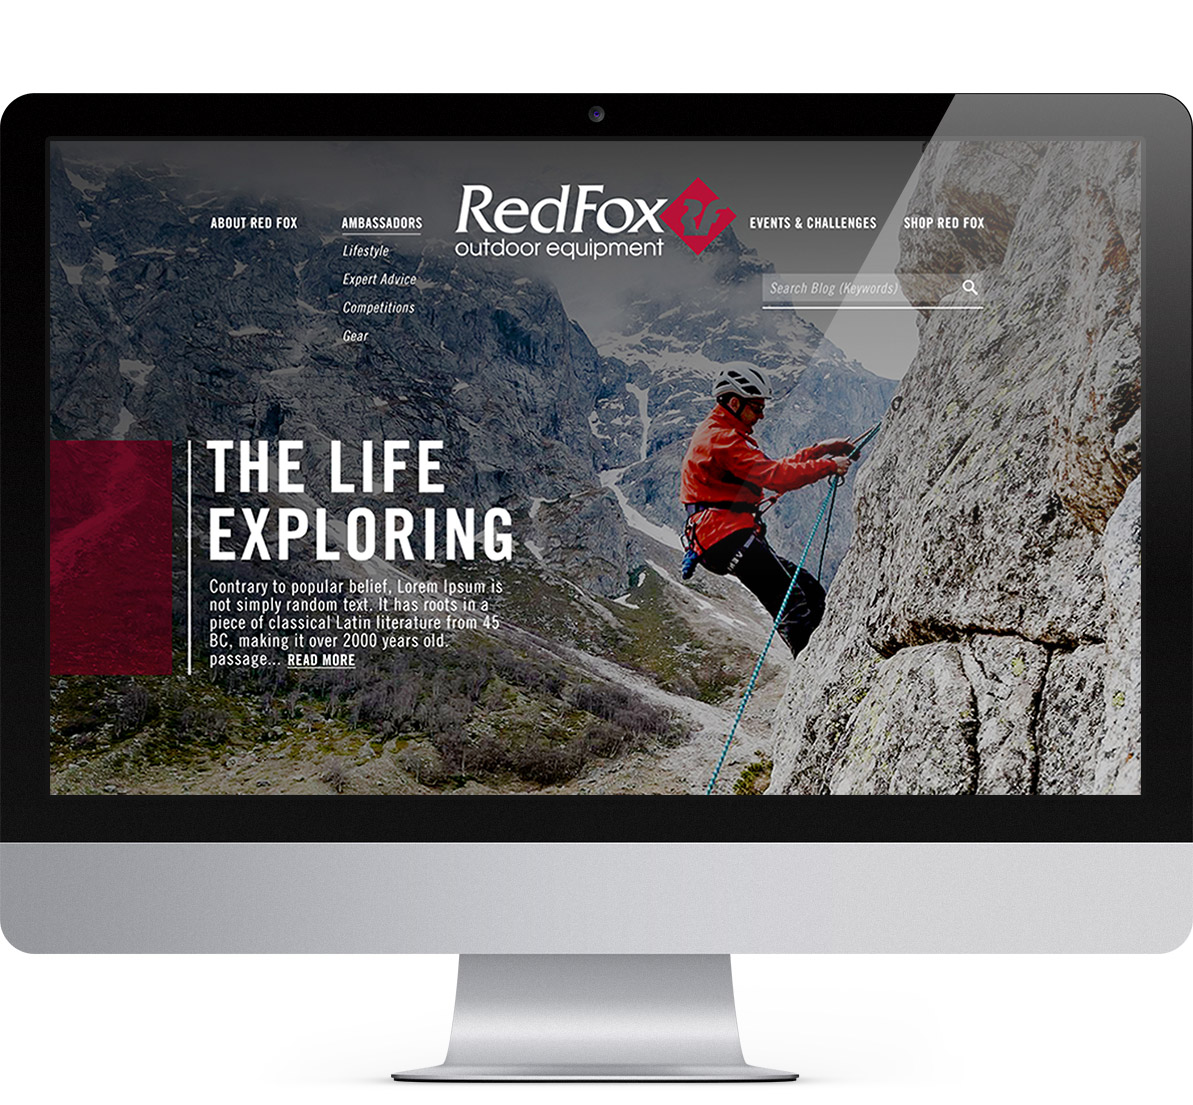 website redesign project for redfox